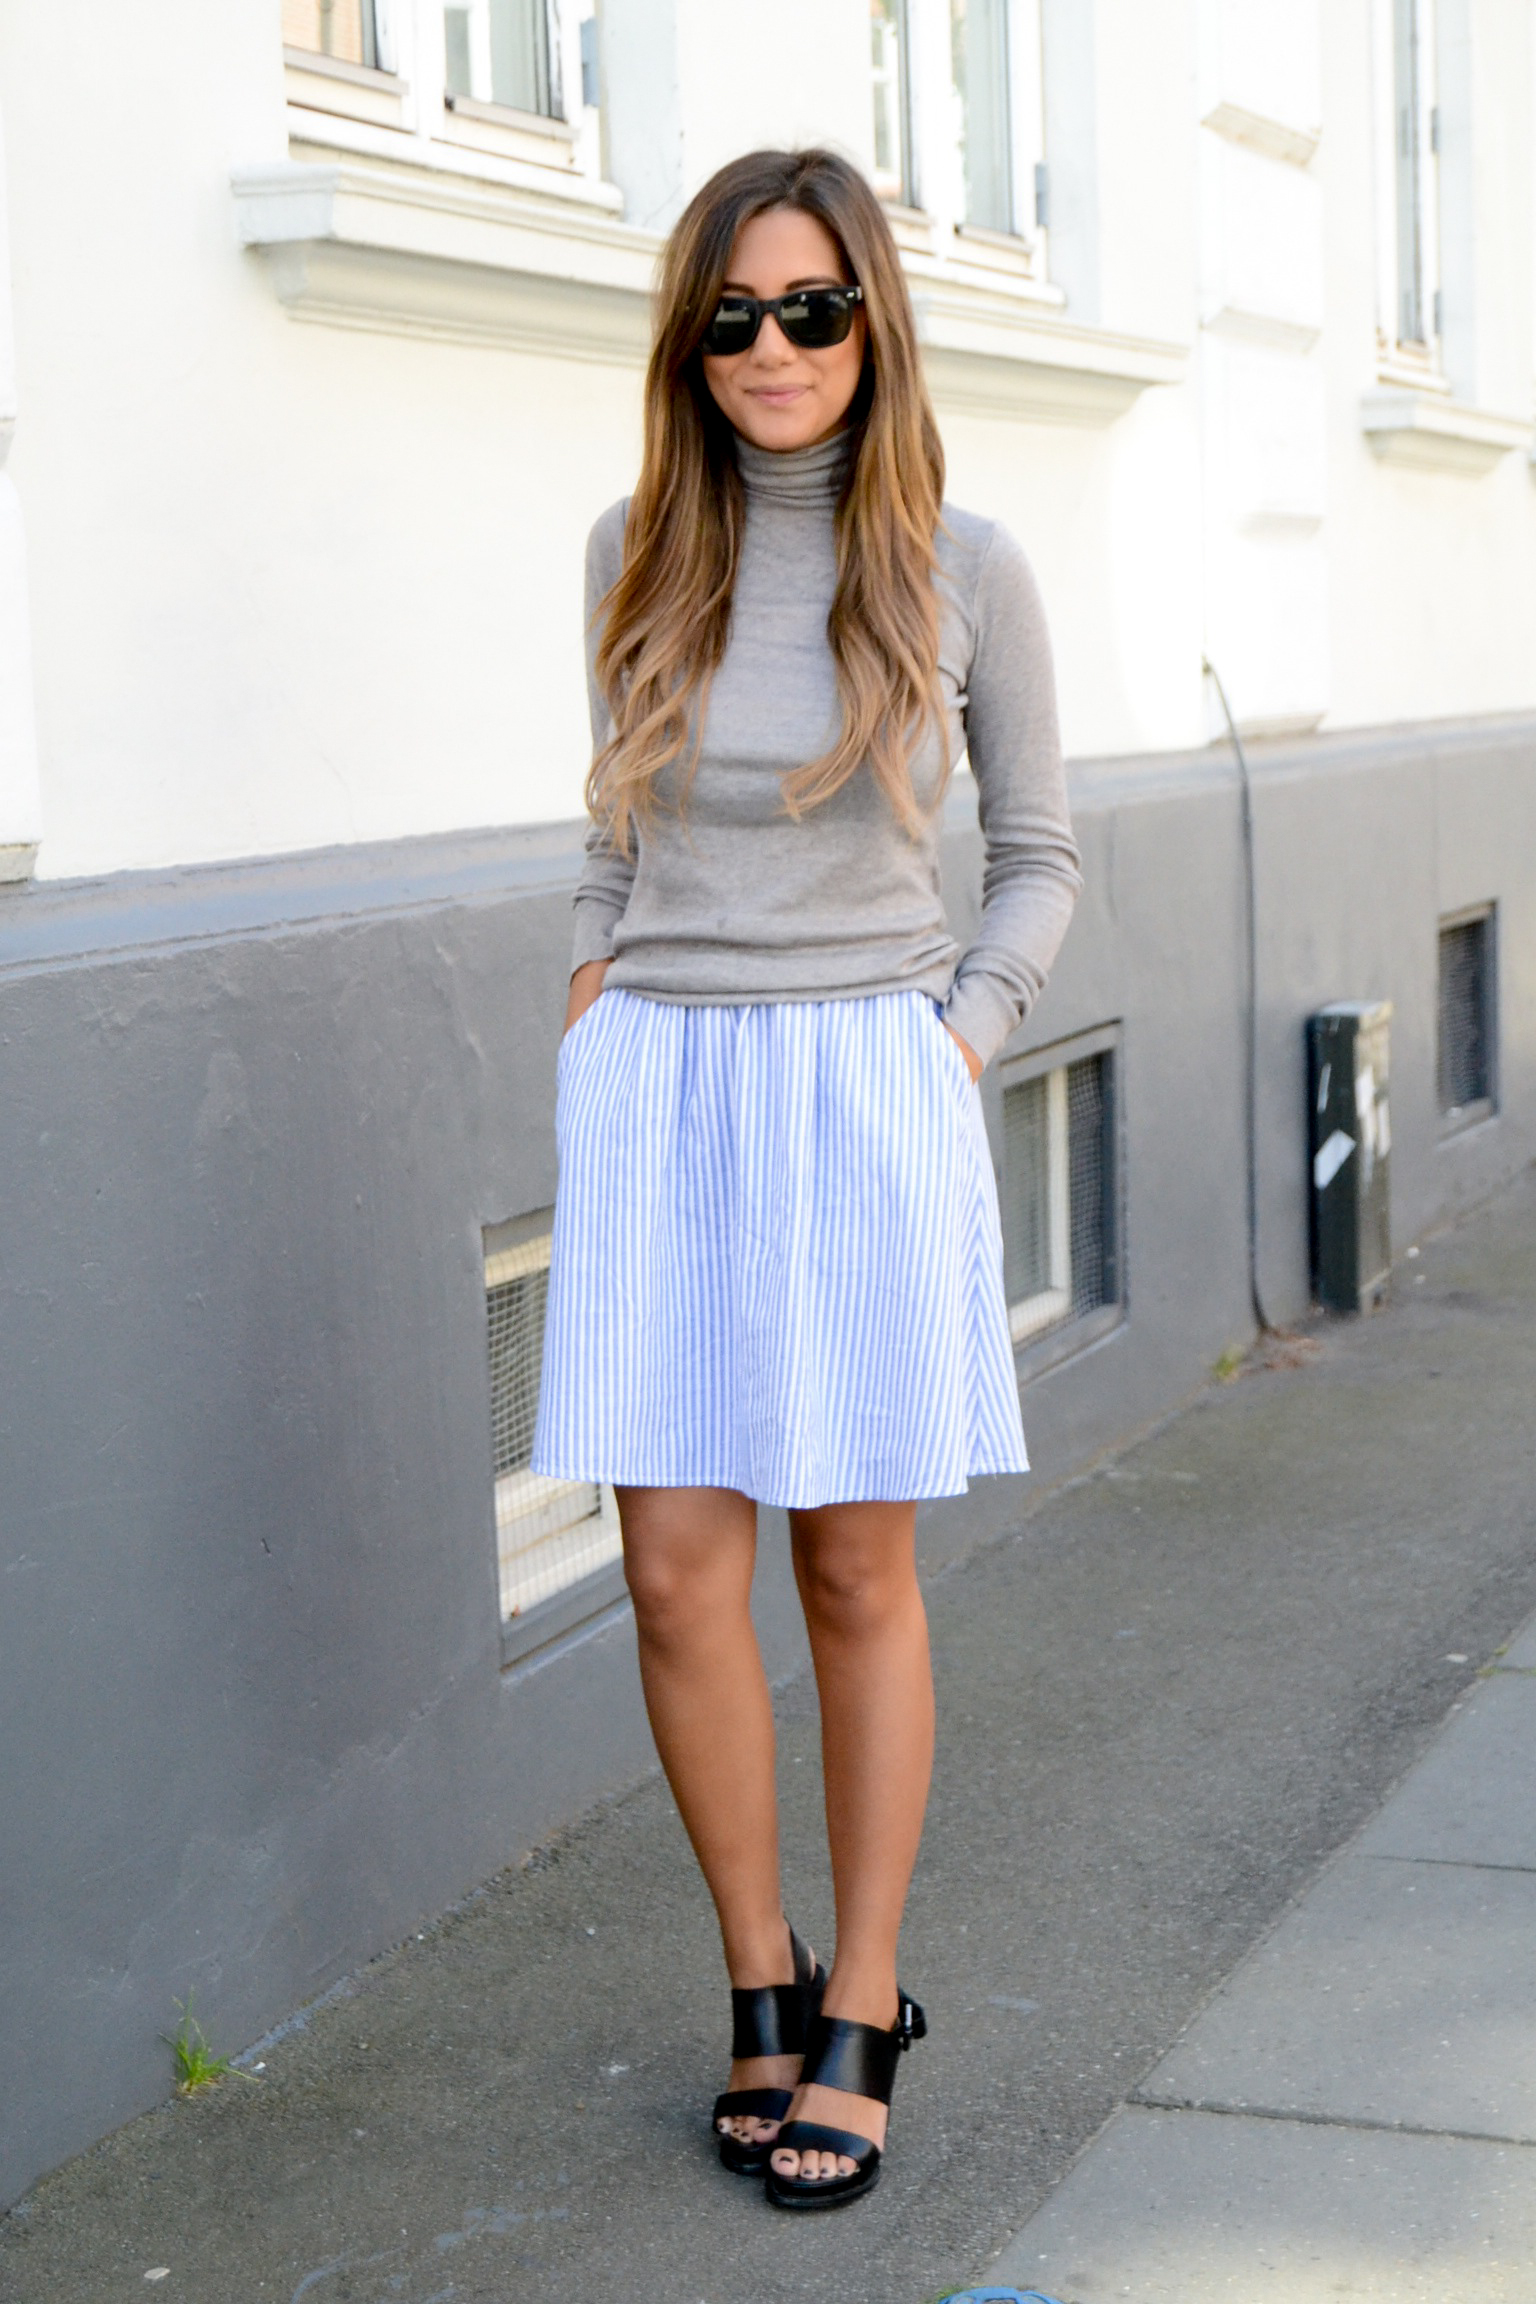 Michelle Nielsen is wearing grey turtleneck from FrontRow, striped skirt from Monki and shoes from & Other Stories